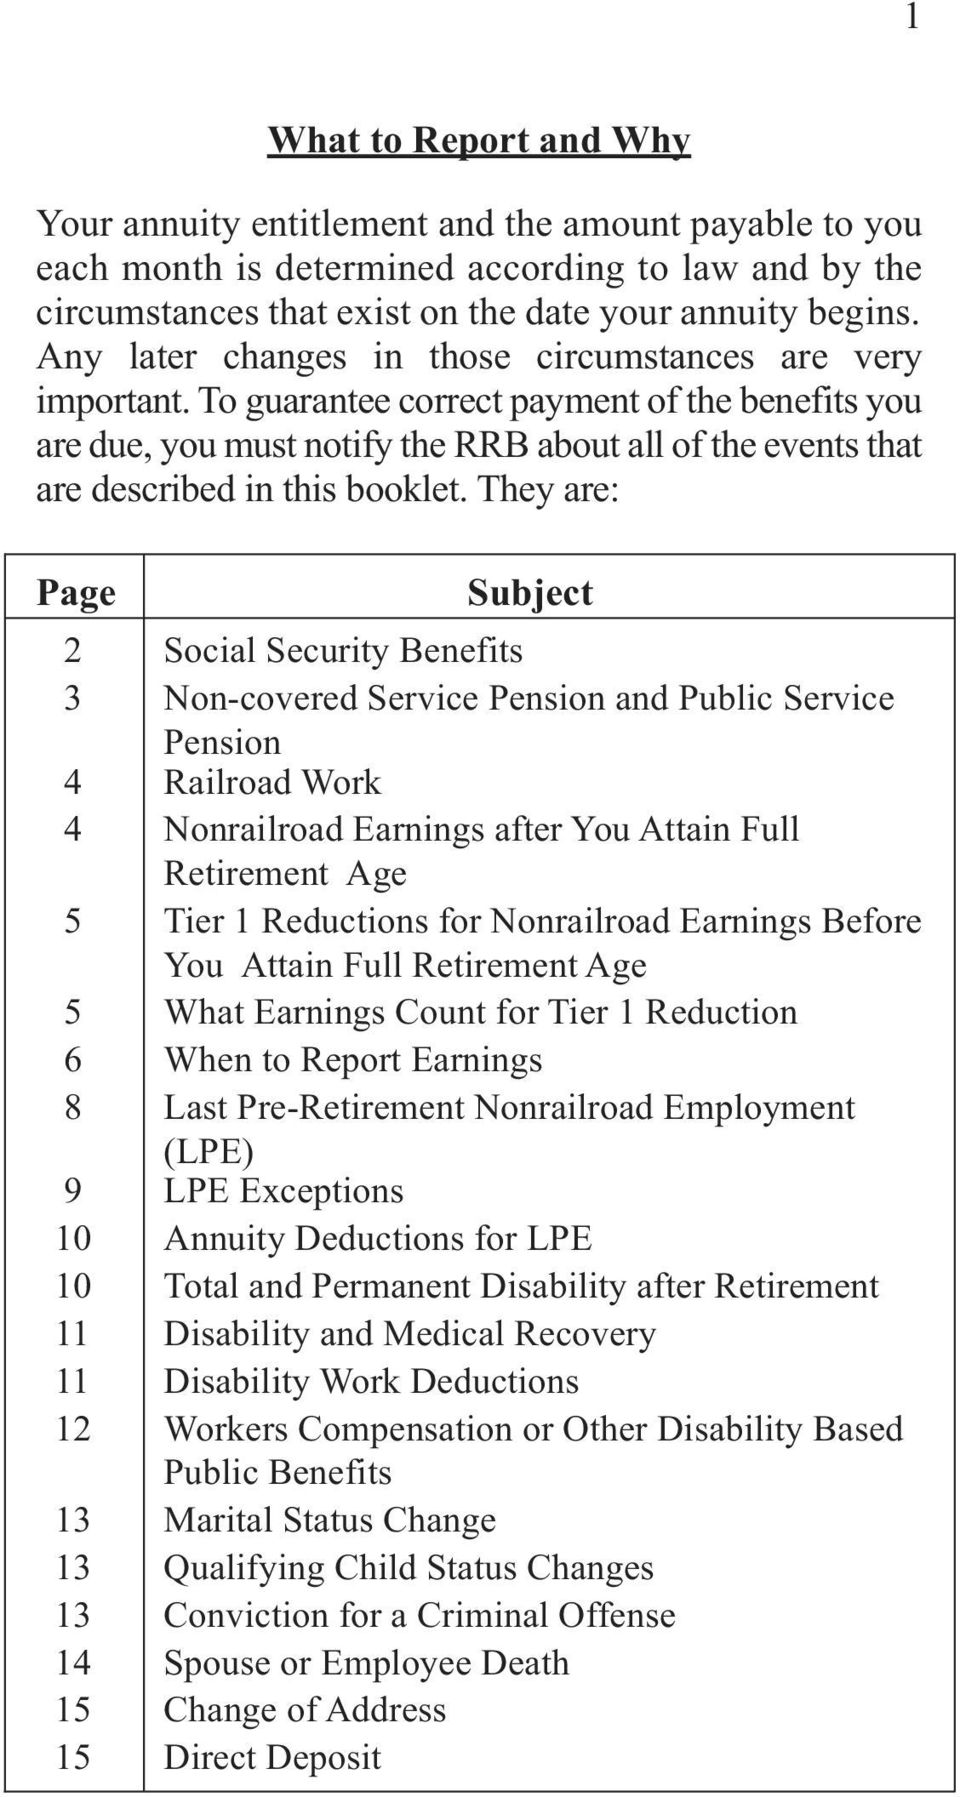 To guarantee correct payment of the benefits you are due, you must notify the RRB about all of the events that are described in this booklet.